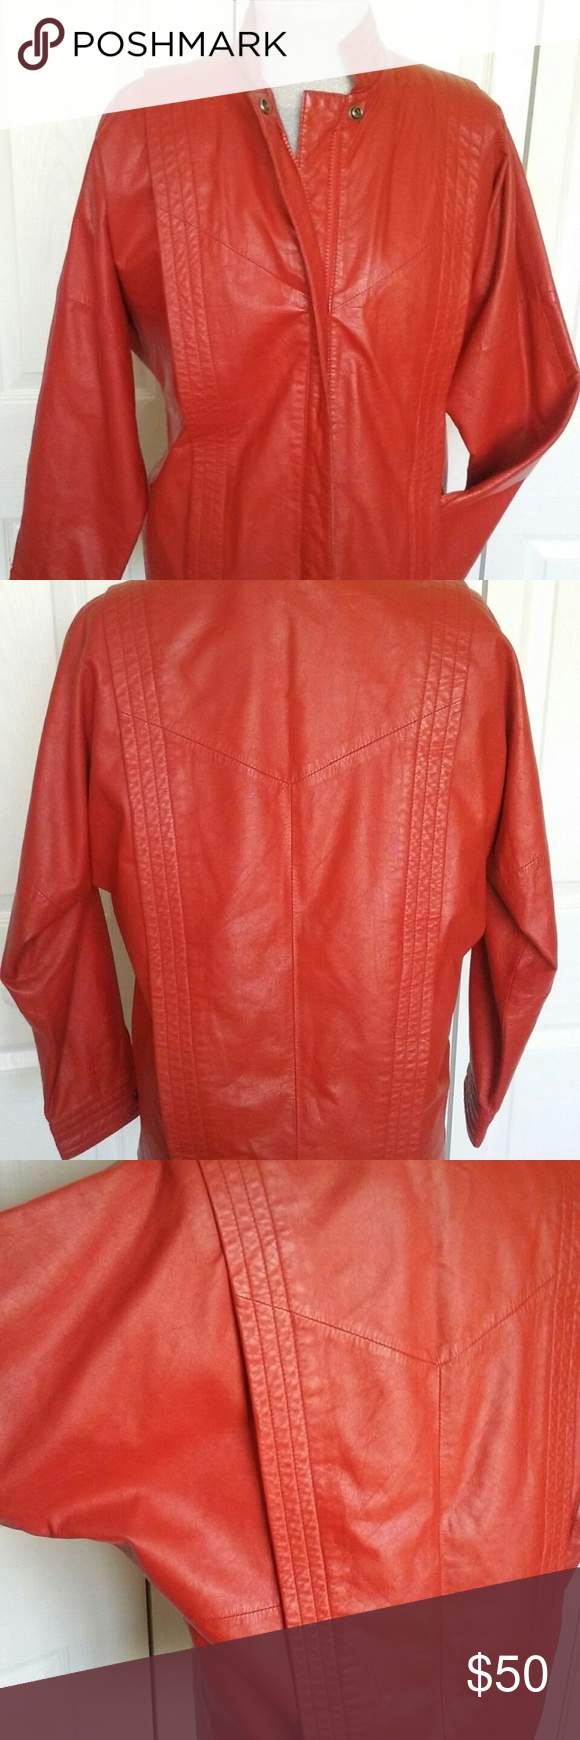 Genuine Leather Jacket Crimson Vintage 70 80s Punk